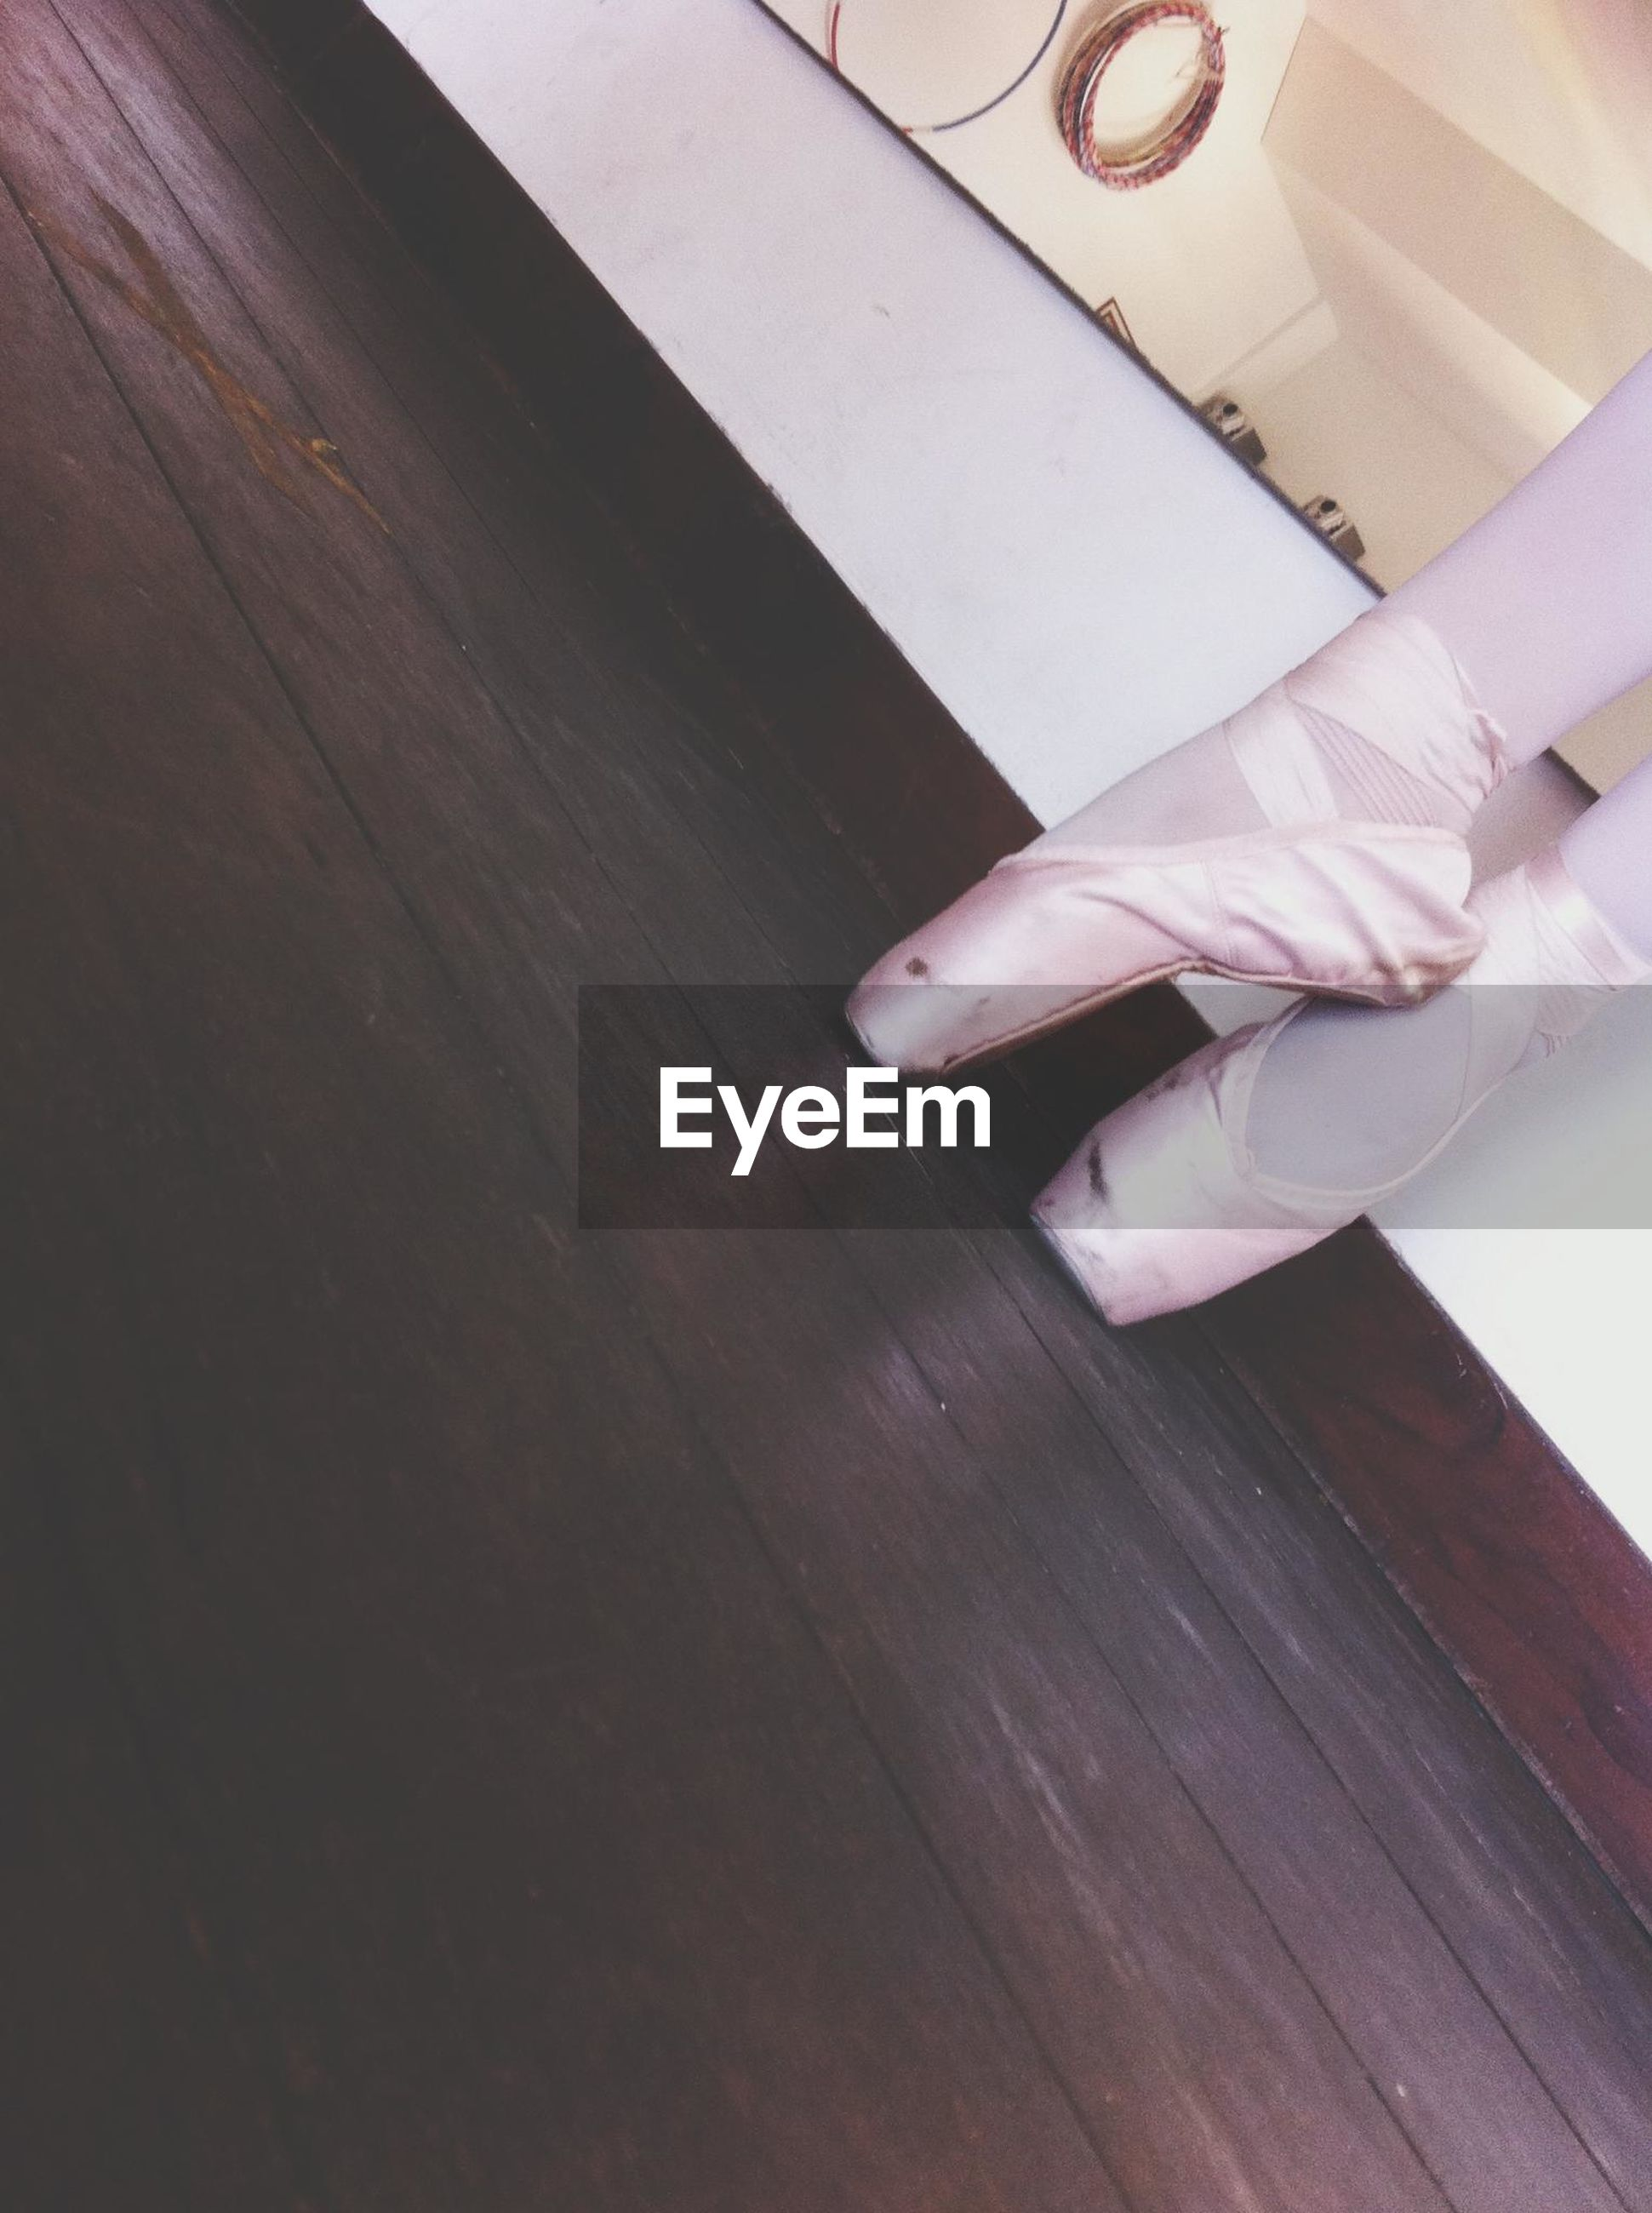 indoors, part of, wood - material, high angle view, cropped, person, still life, table, close-up, wooden, low section, flooring, hardwood floor, art and craft, work tool, shoe, paper